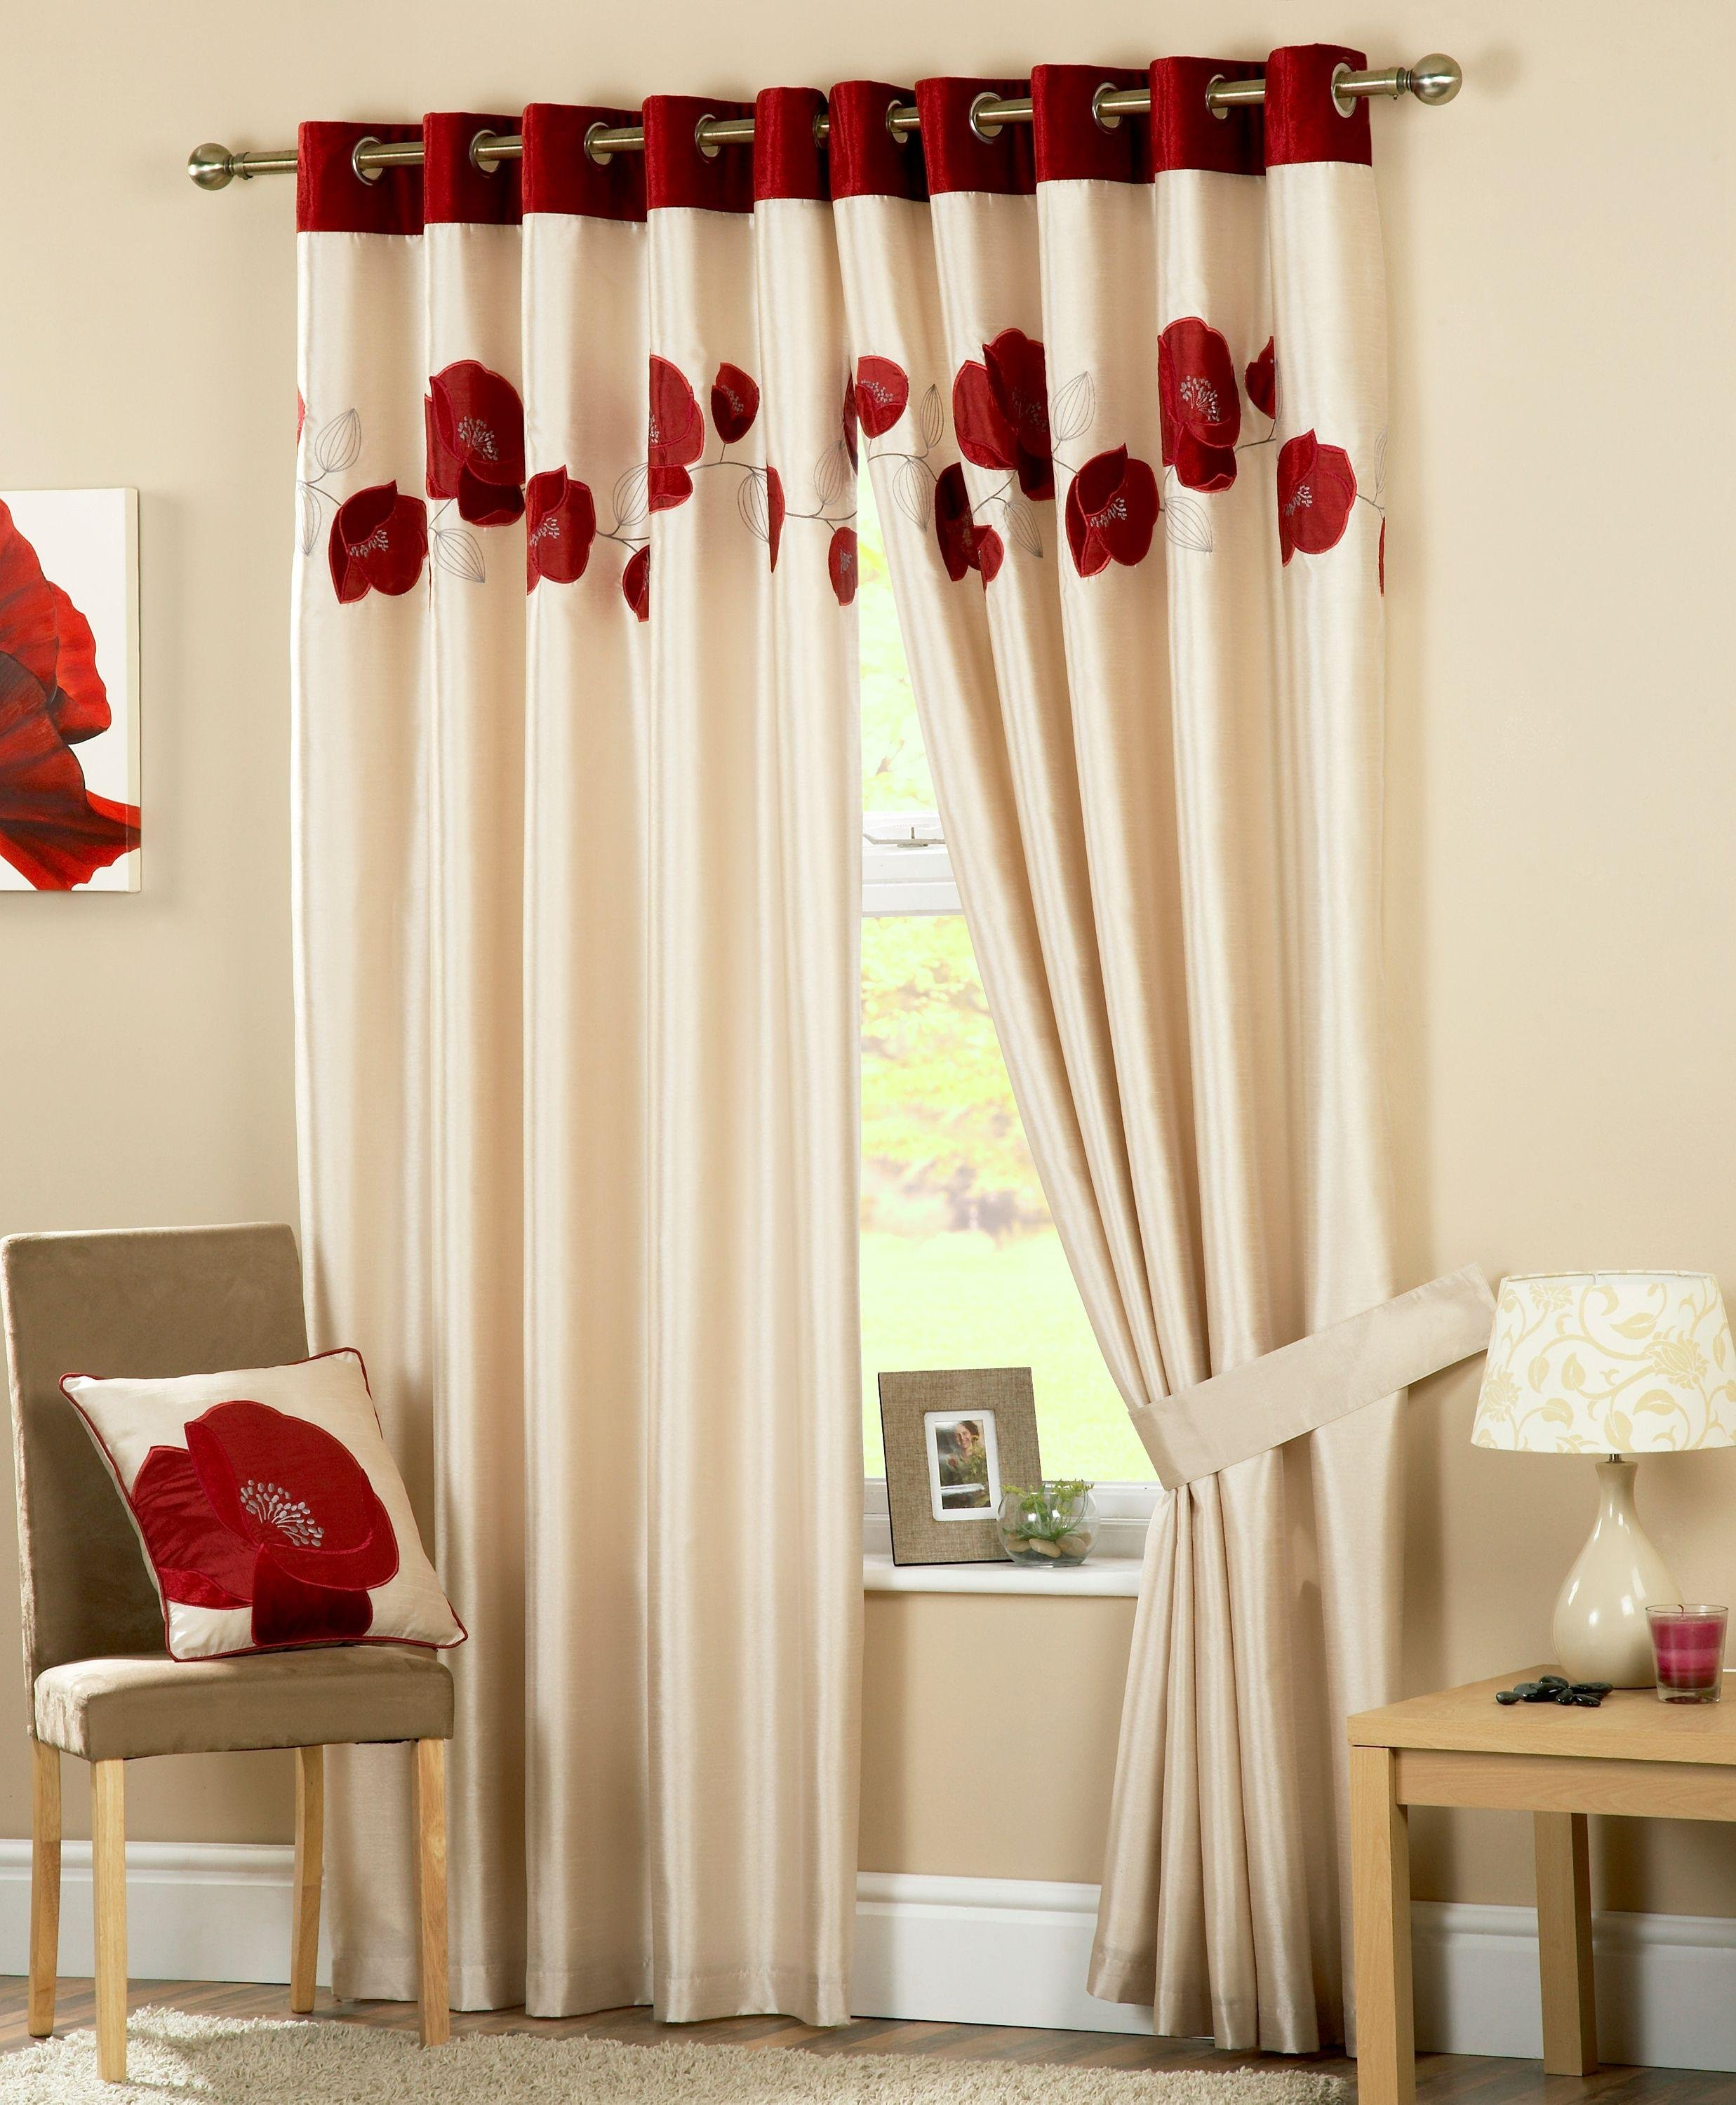 curtina-danielle-lined-eyelet-curtains-229x274cm-red